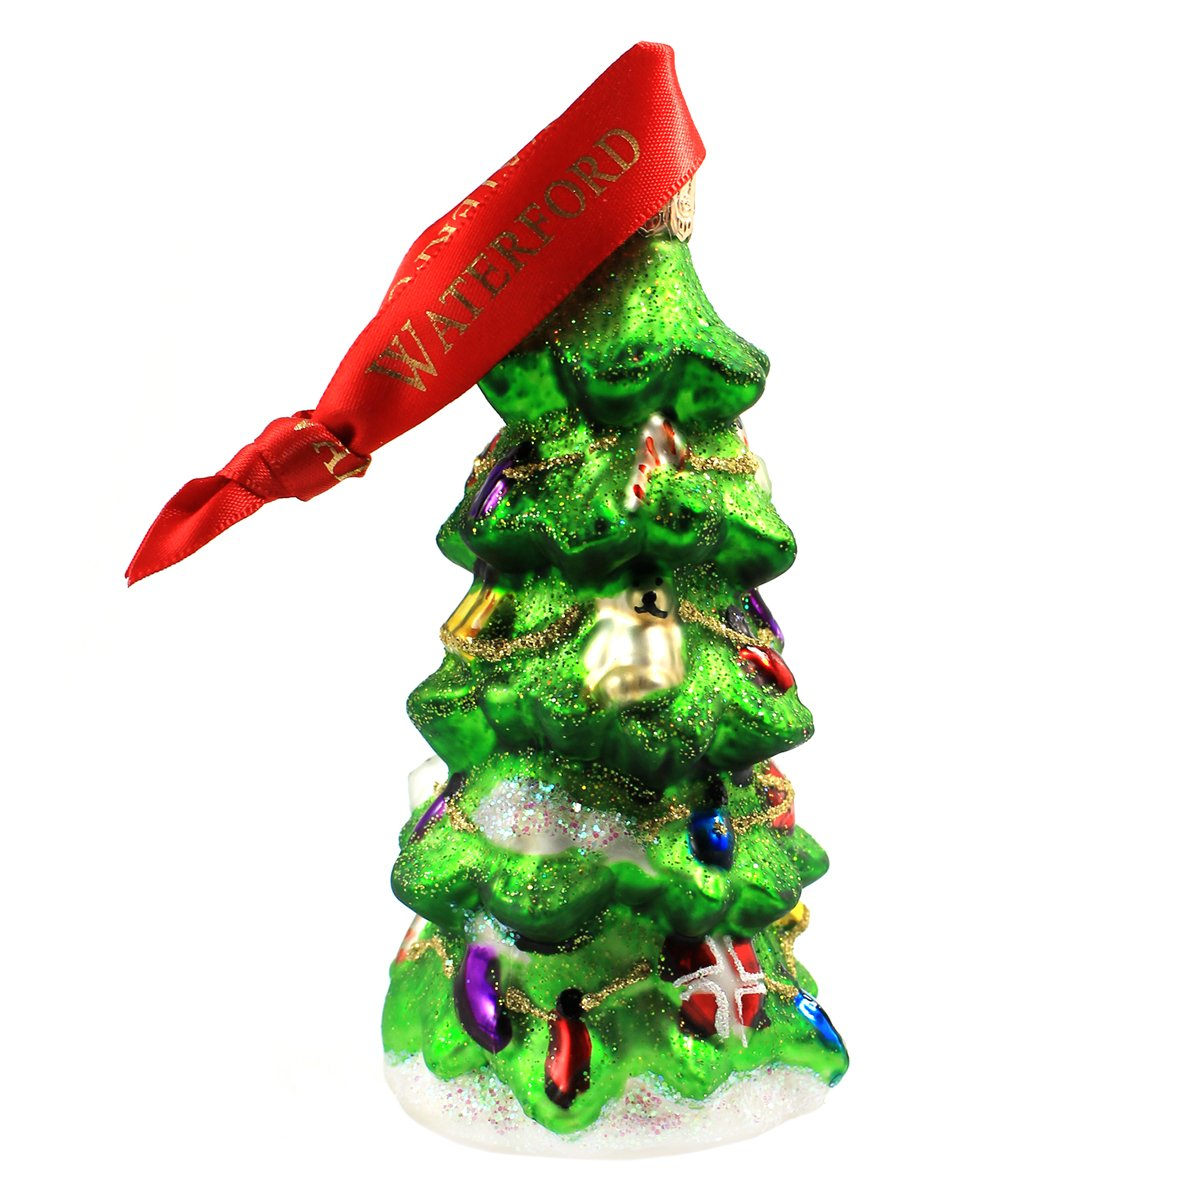 Amazon.com: Waterford Holiday Heirlooms Decorated Christmas Tree ...